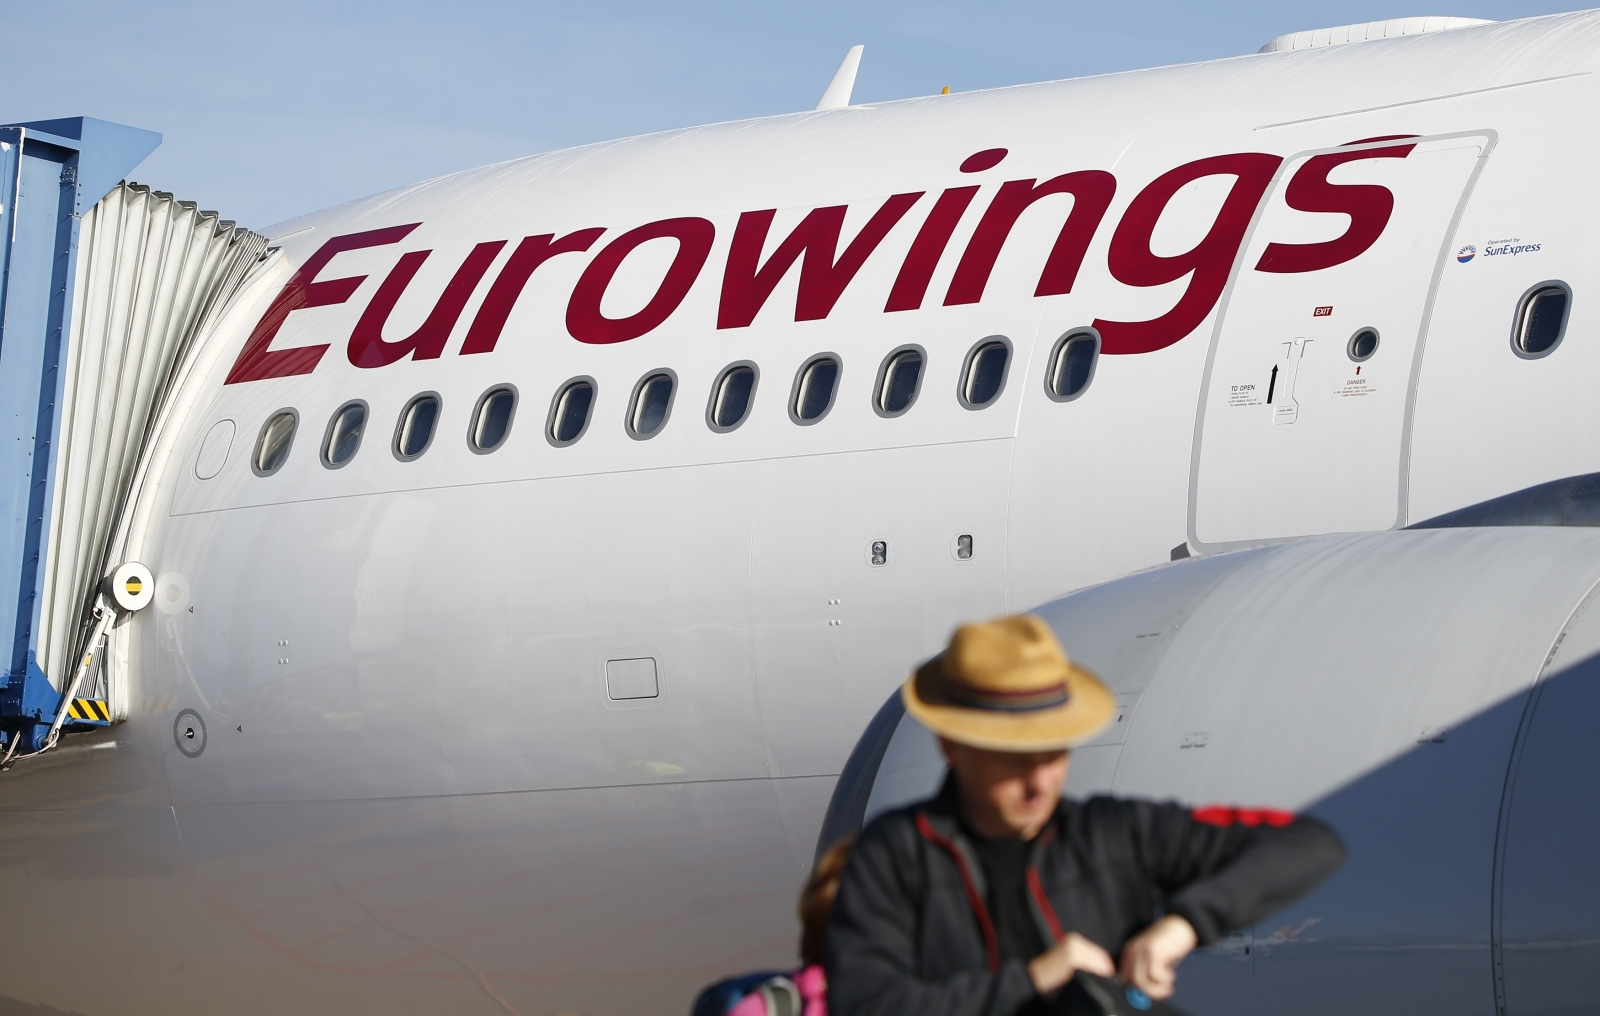 A Eurowings Airbus A330, which is part of the airline's long-haul fleet